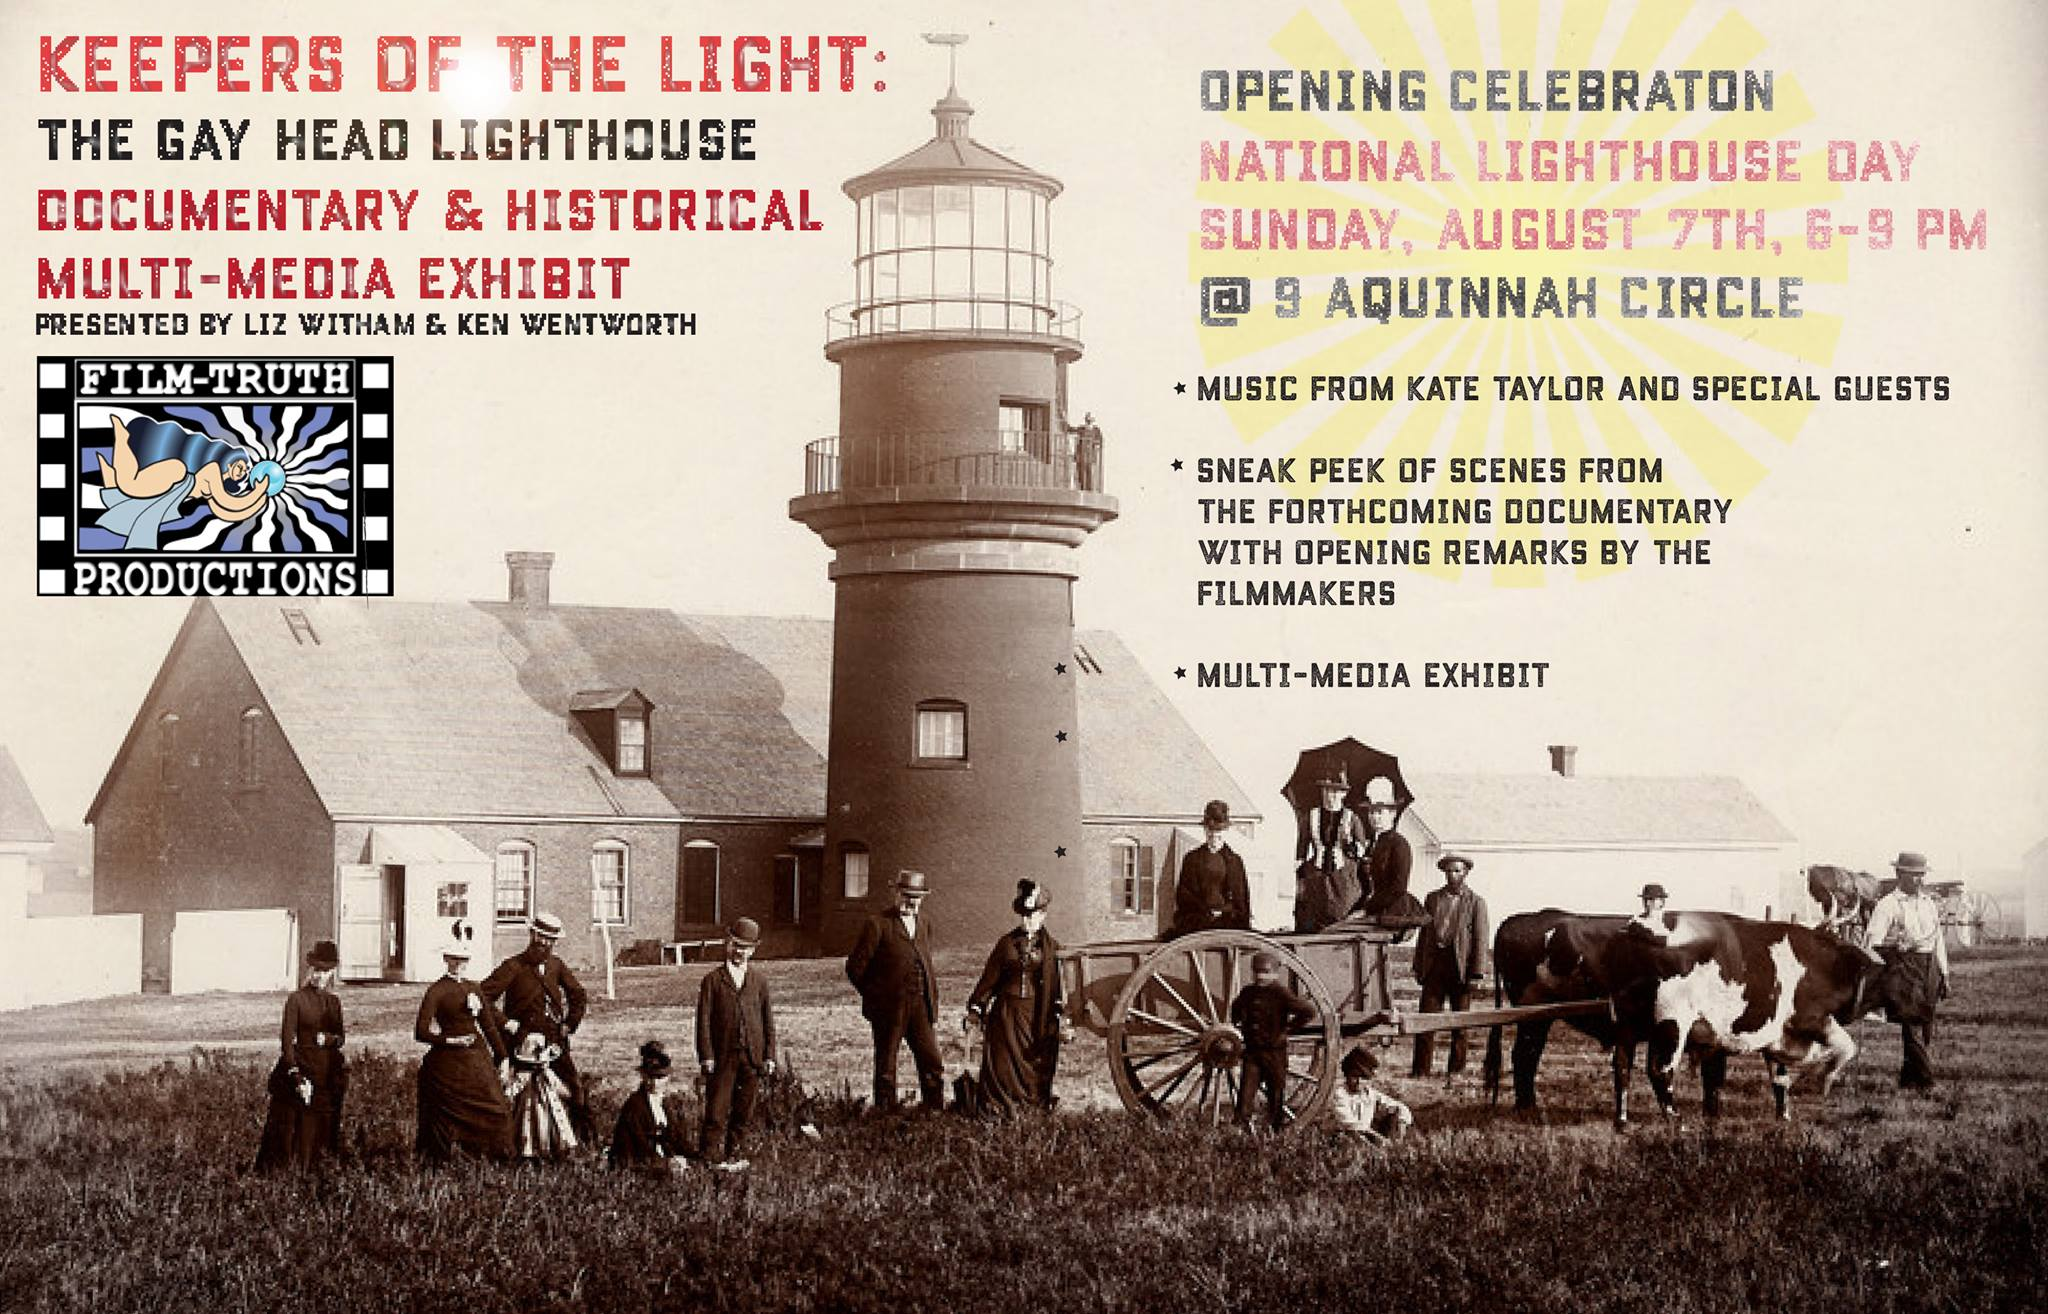 Gay Head Lighthouse exhibit invite